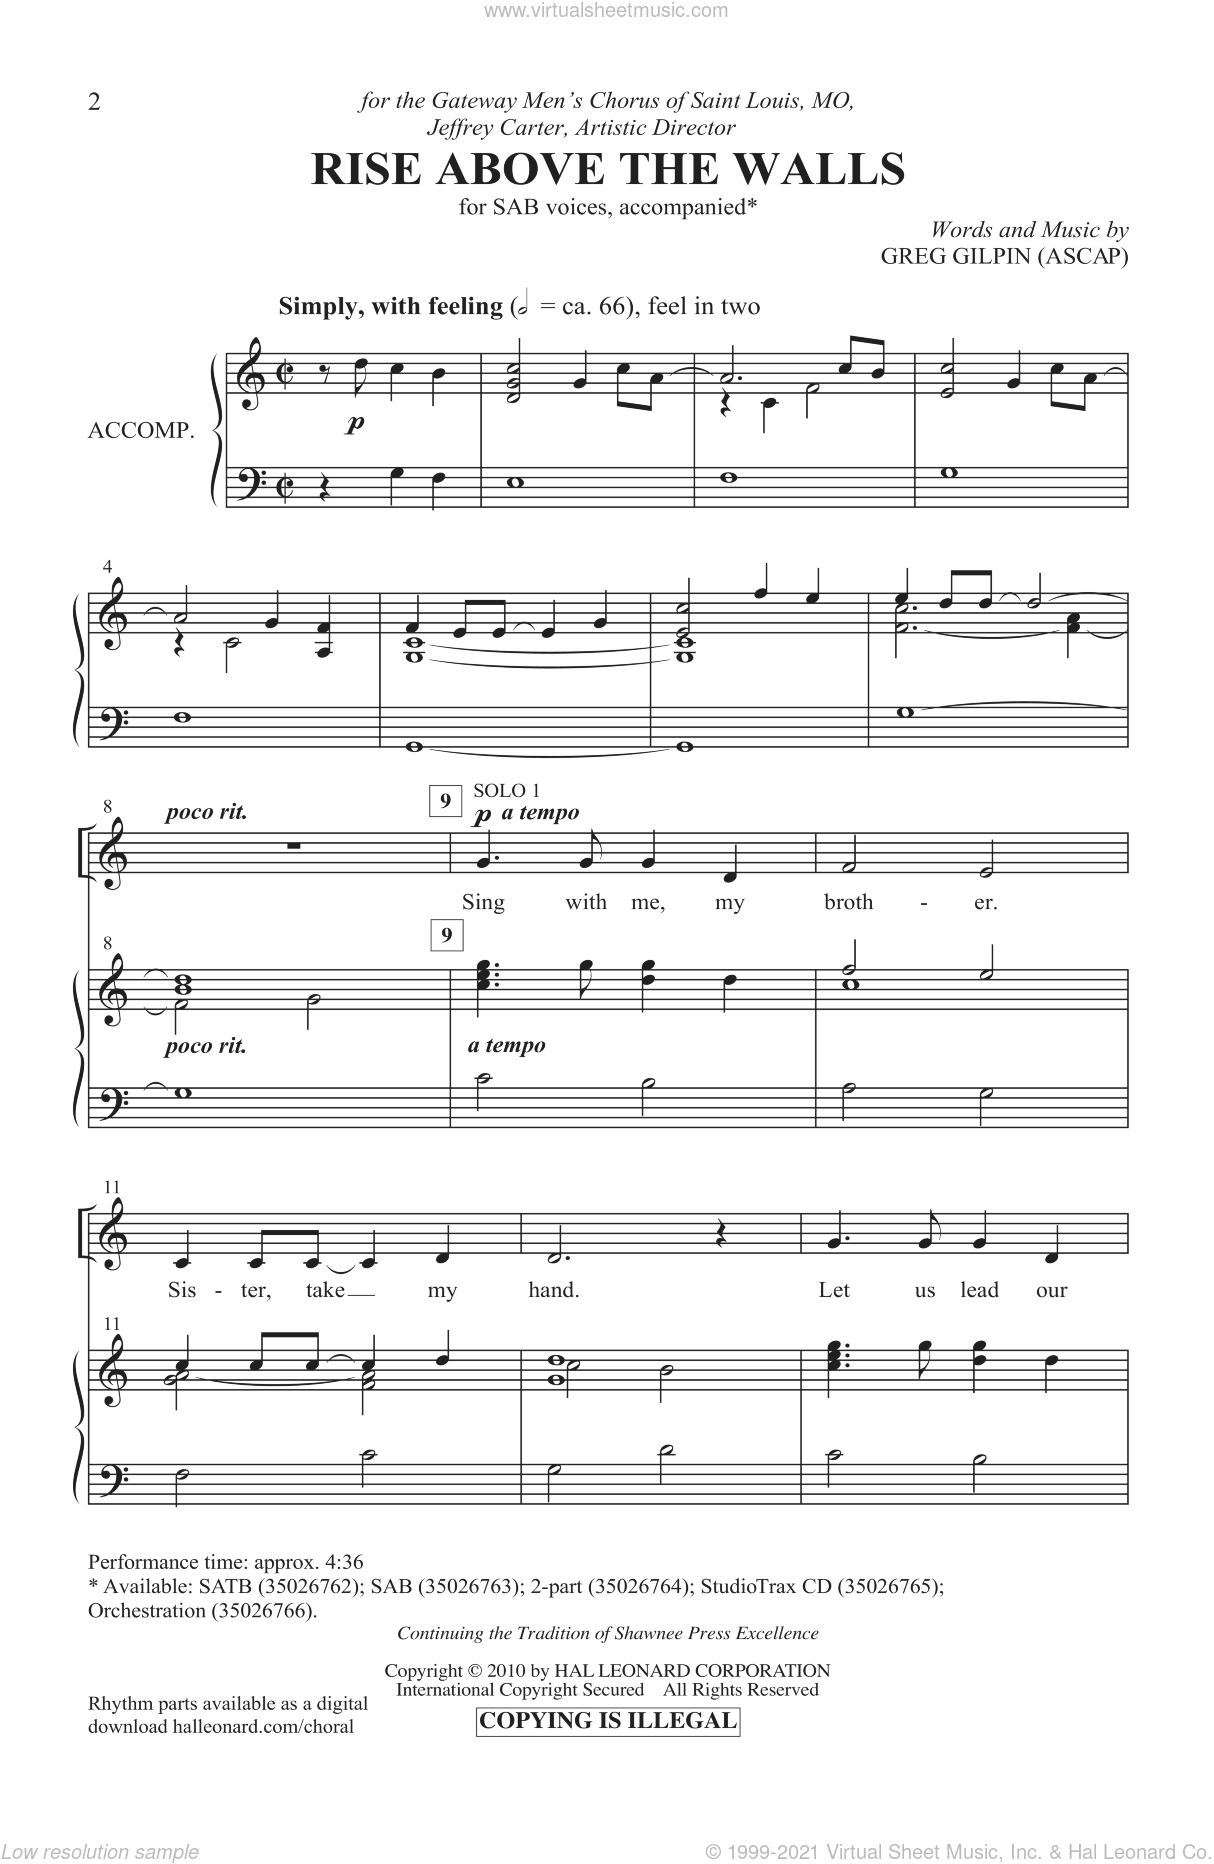 Rise Above The Walls sheet music for choir and piano (SAB) by Greg Gilpin